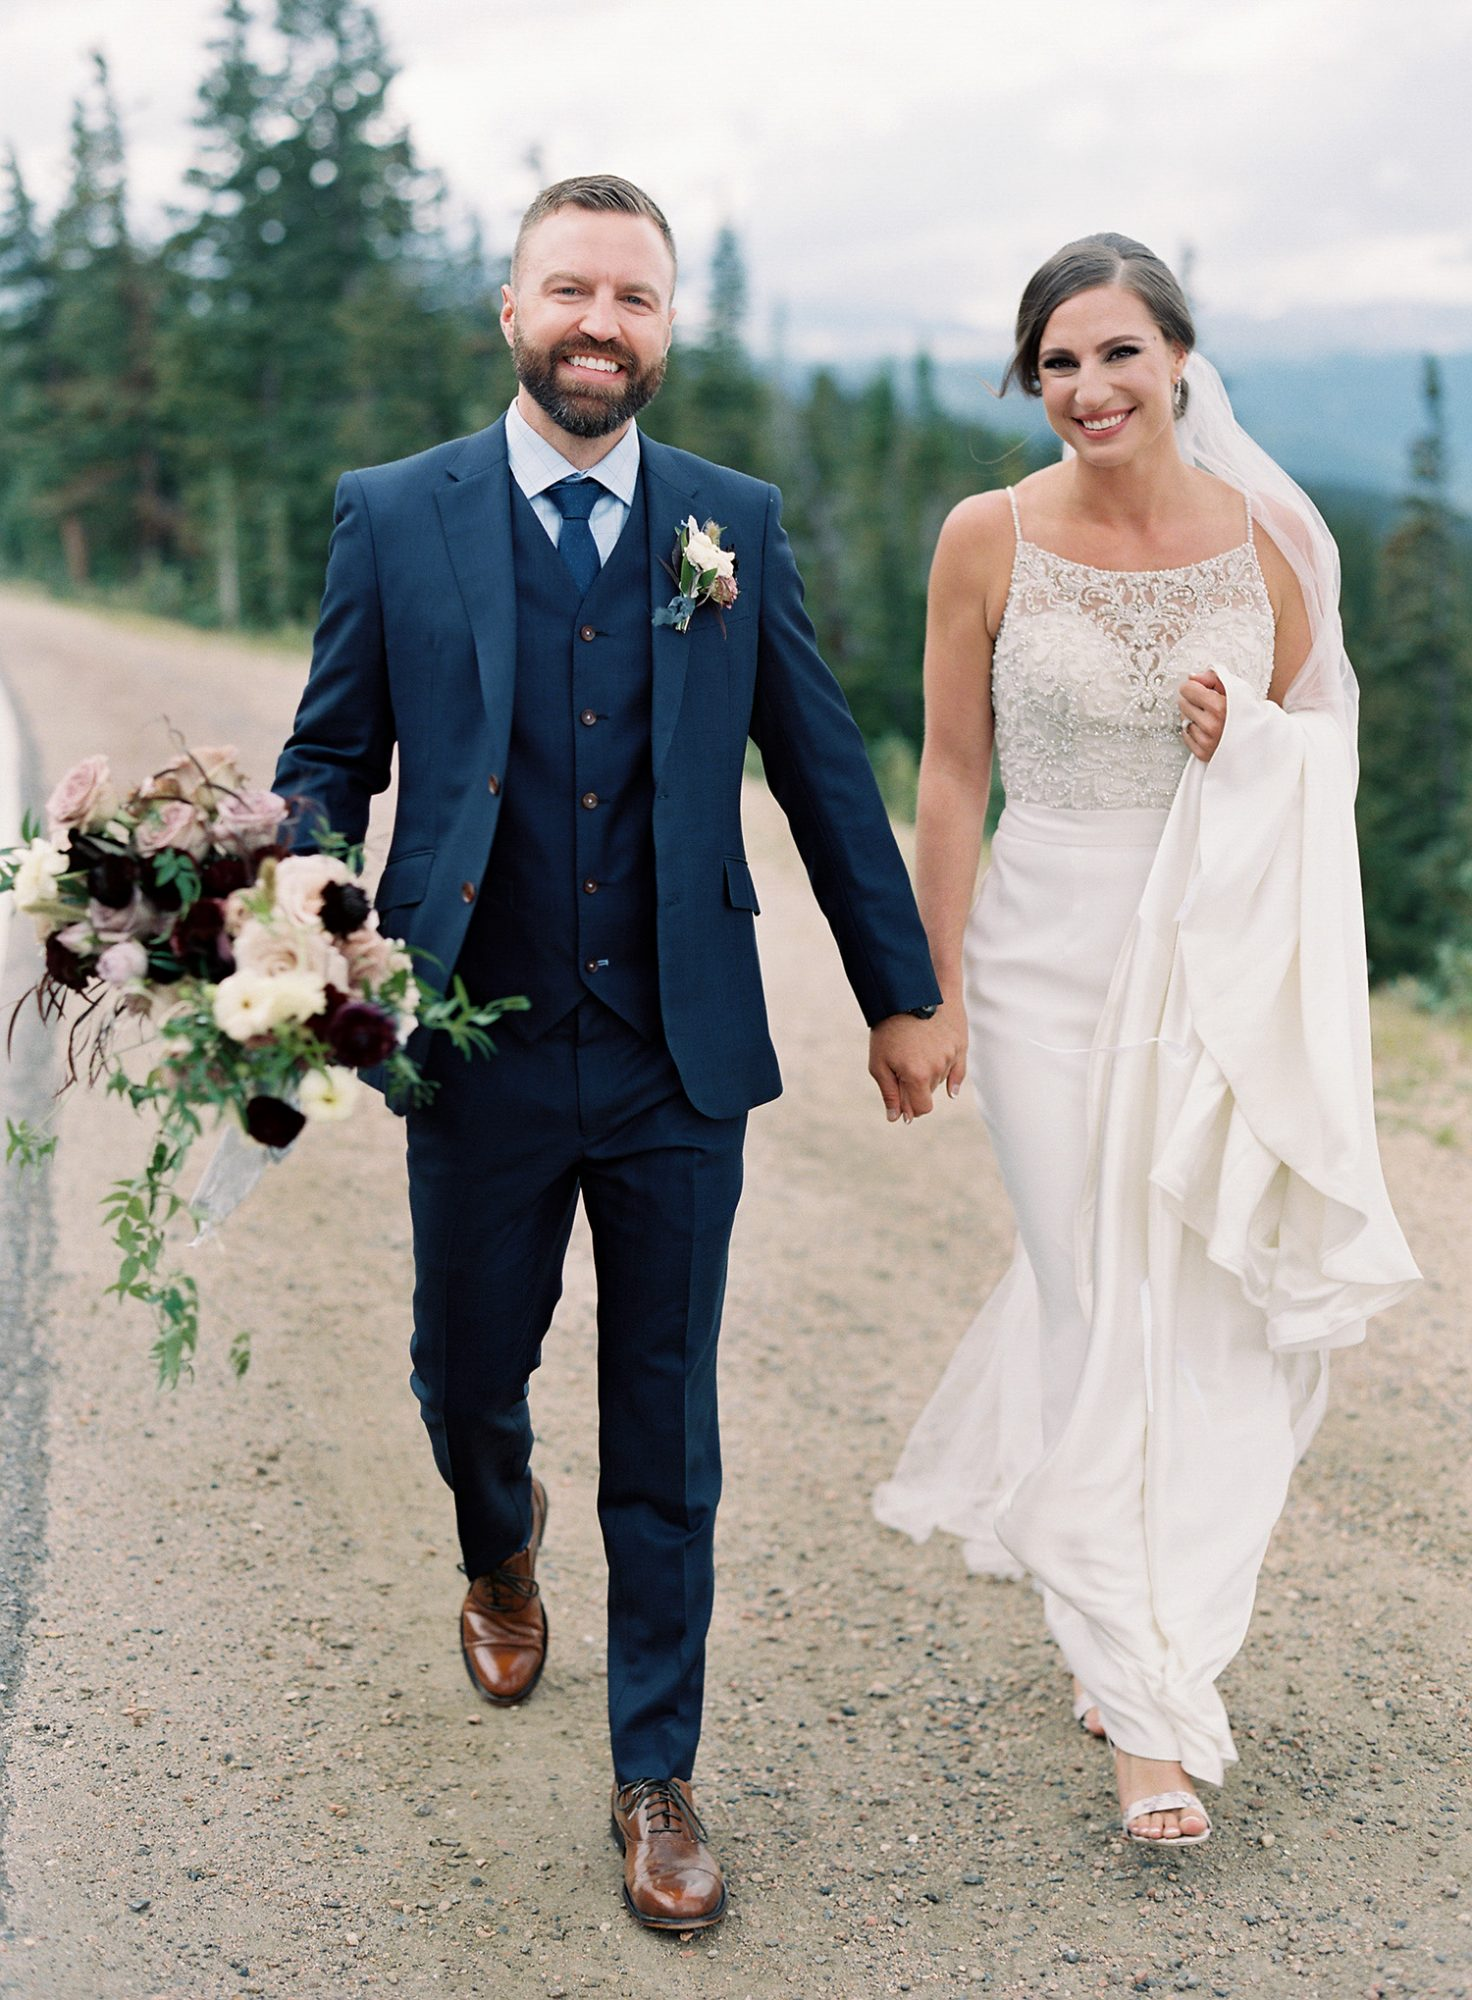 Casey Andrew Wedding Couple Holding Hands and Walking